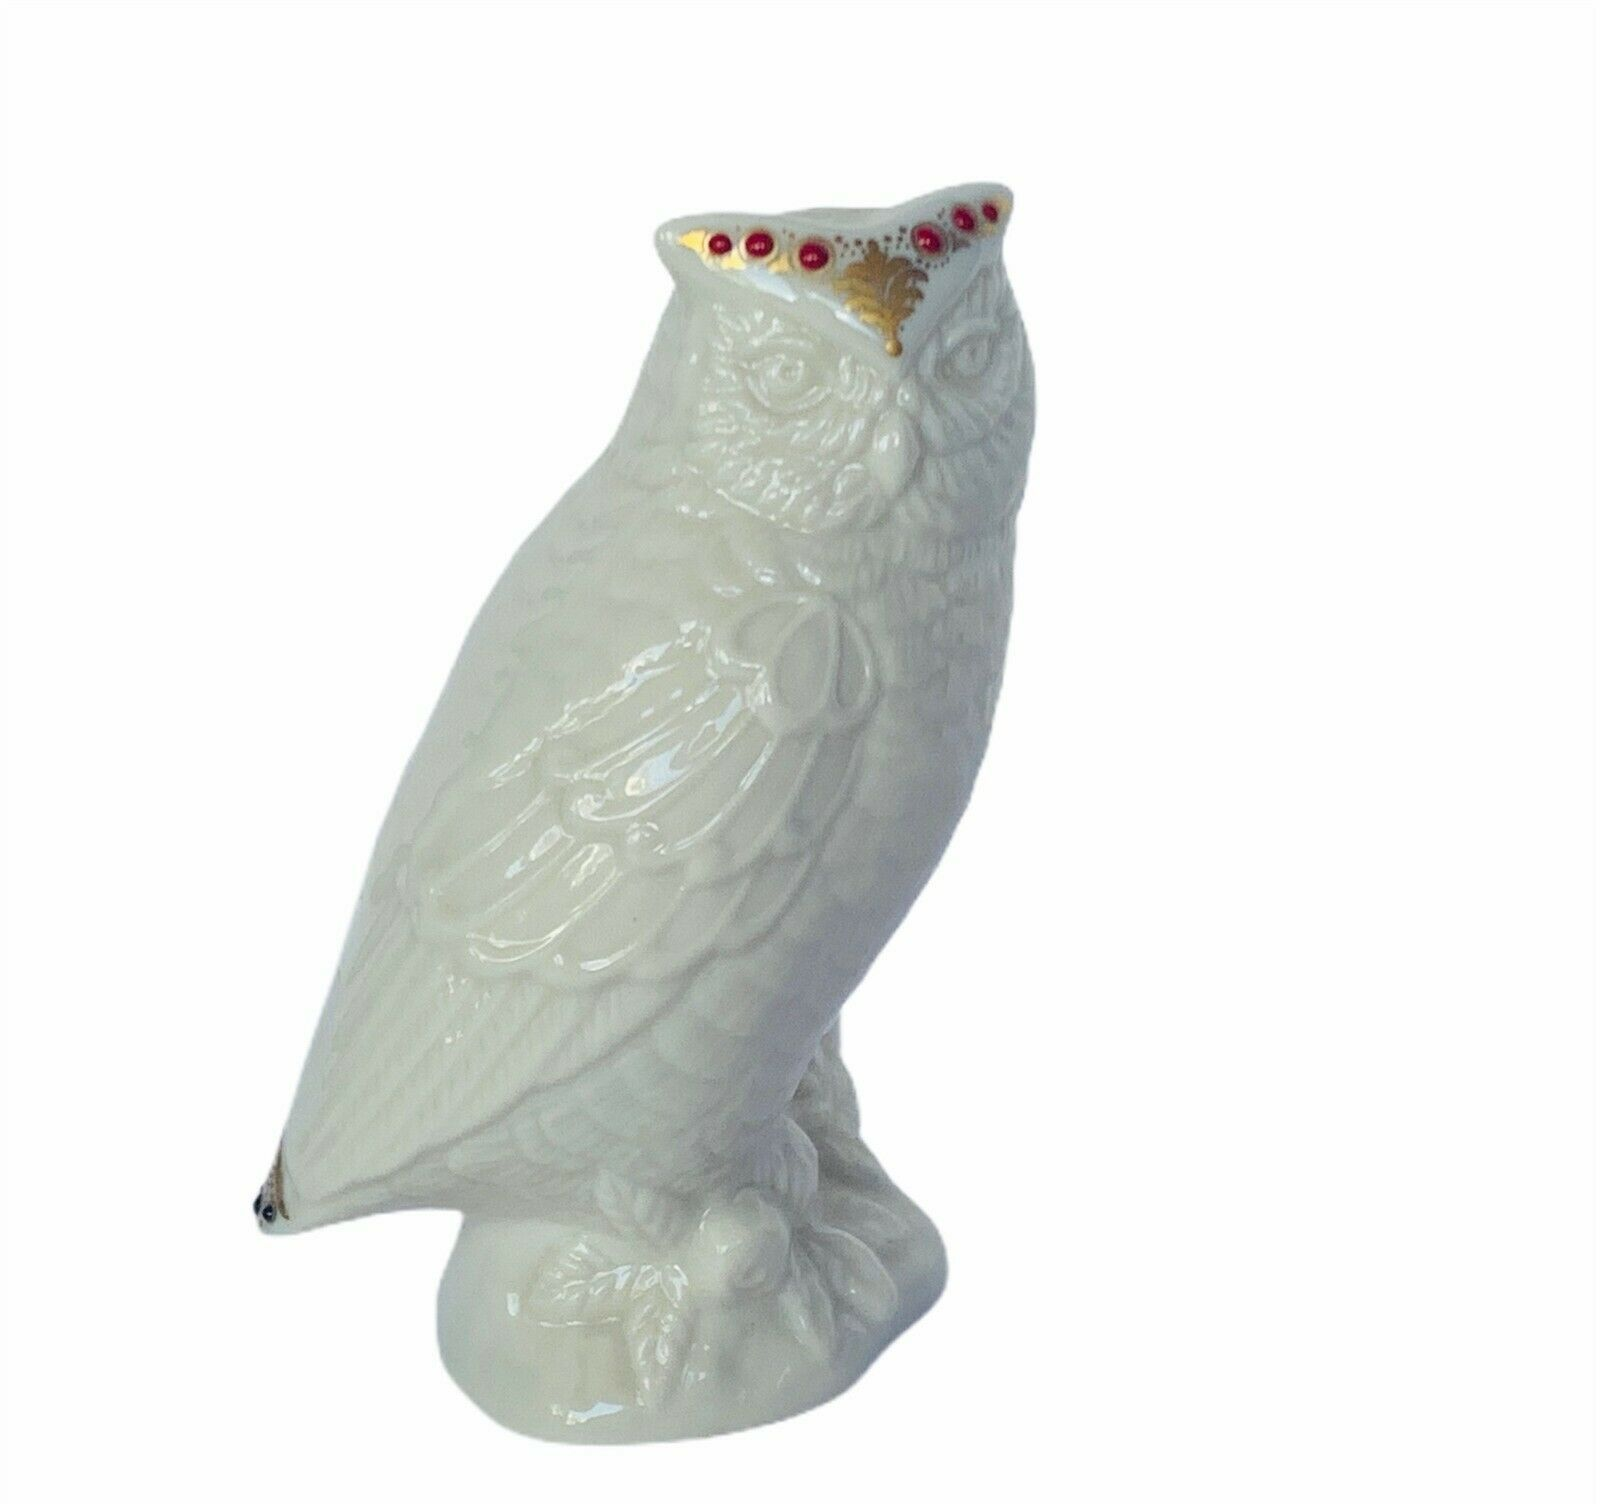 Primary image for Owl figurine vtg sculpture Lenox china crown jewels collection porcelain snowy